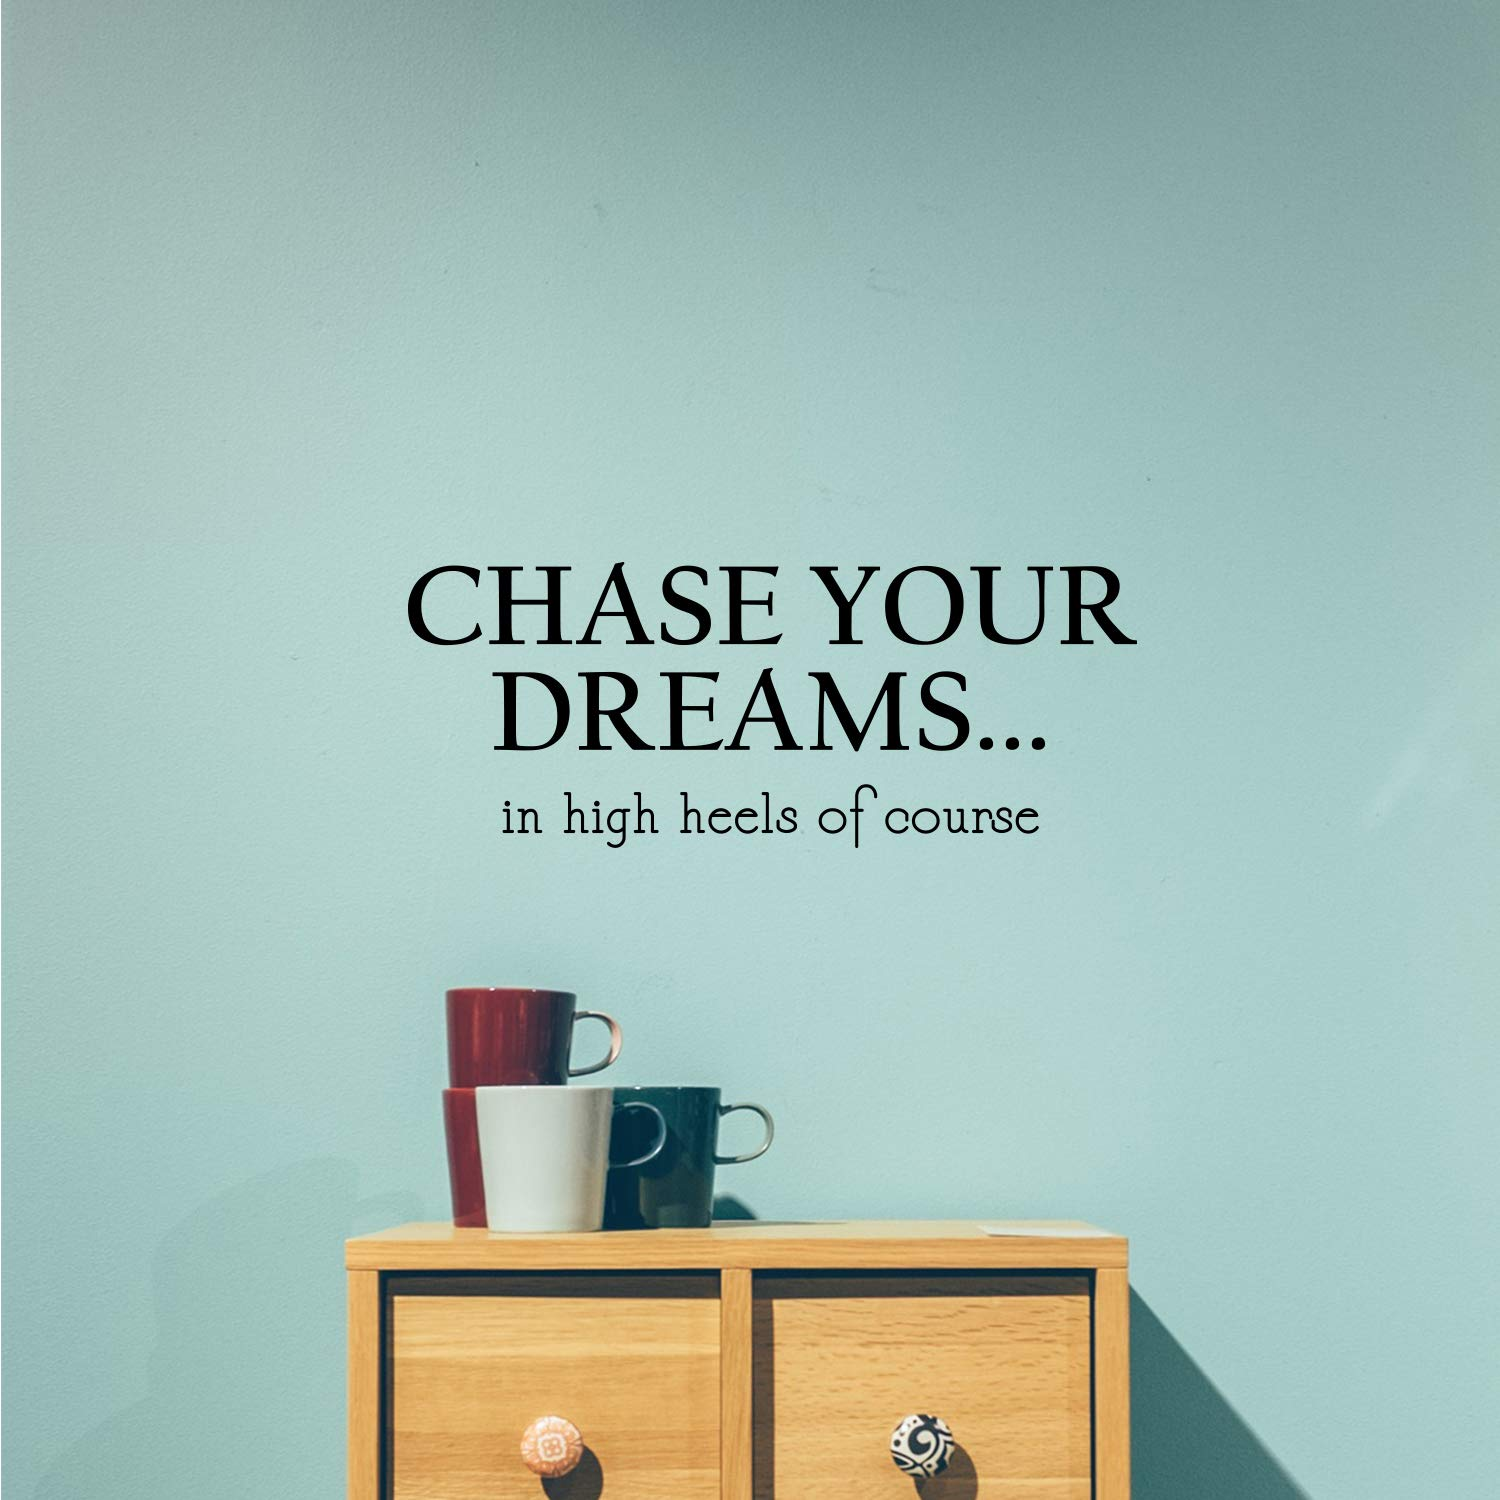 Womens Modern Chic Workplace Bedroom Decoration Quote 9 x 23 Trendy Wall Home Office Inspiration Decor Chase Your Dreams in High Heels of Course Vinyl Wall Art Decal